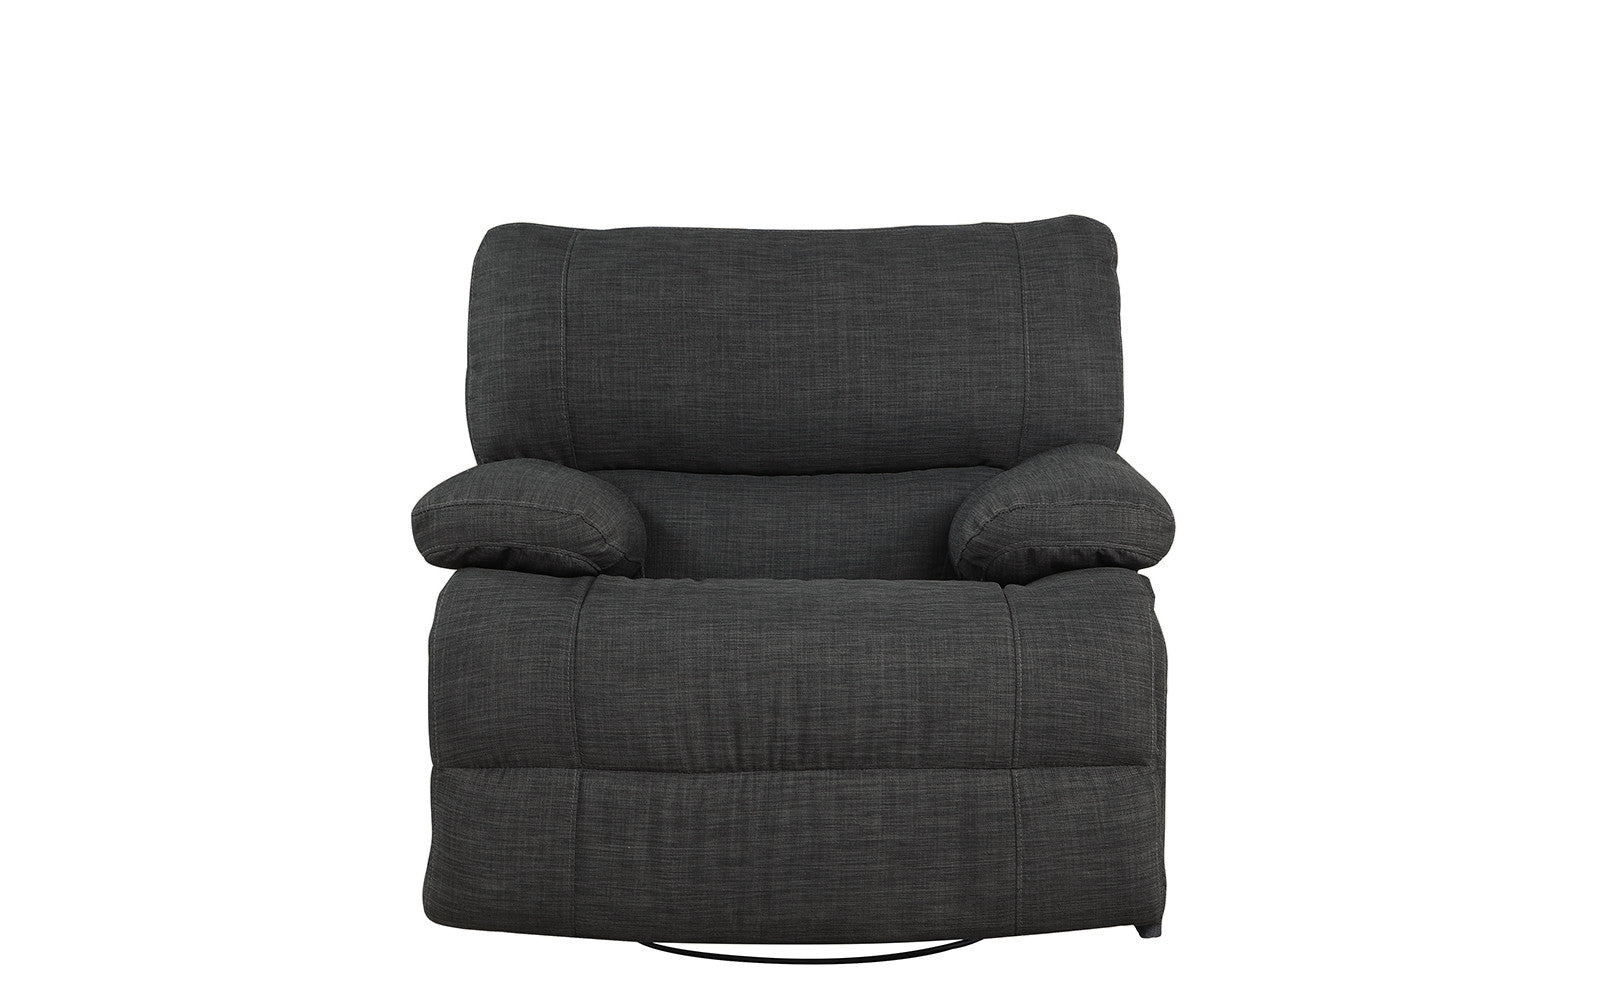 Athens Traditional Fabric Recliner Chair  sc 1 st  Sofamania & Recliners | Reclining Loveseats | Recliner Chairs - Sofamania islam-shia.org